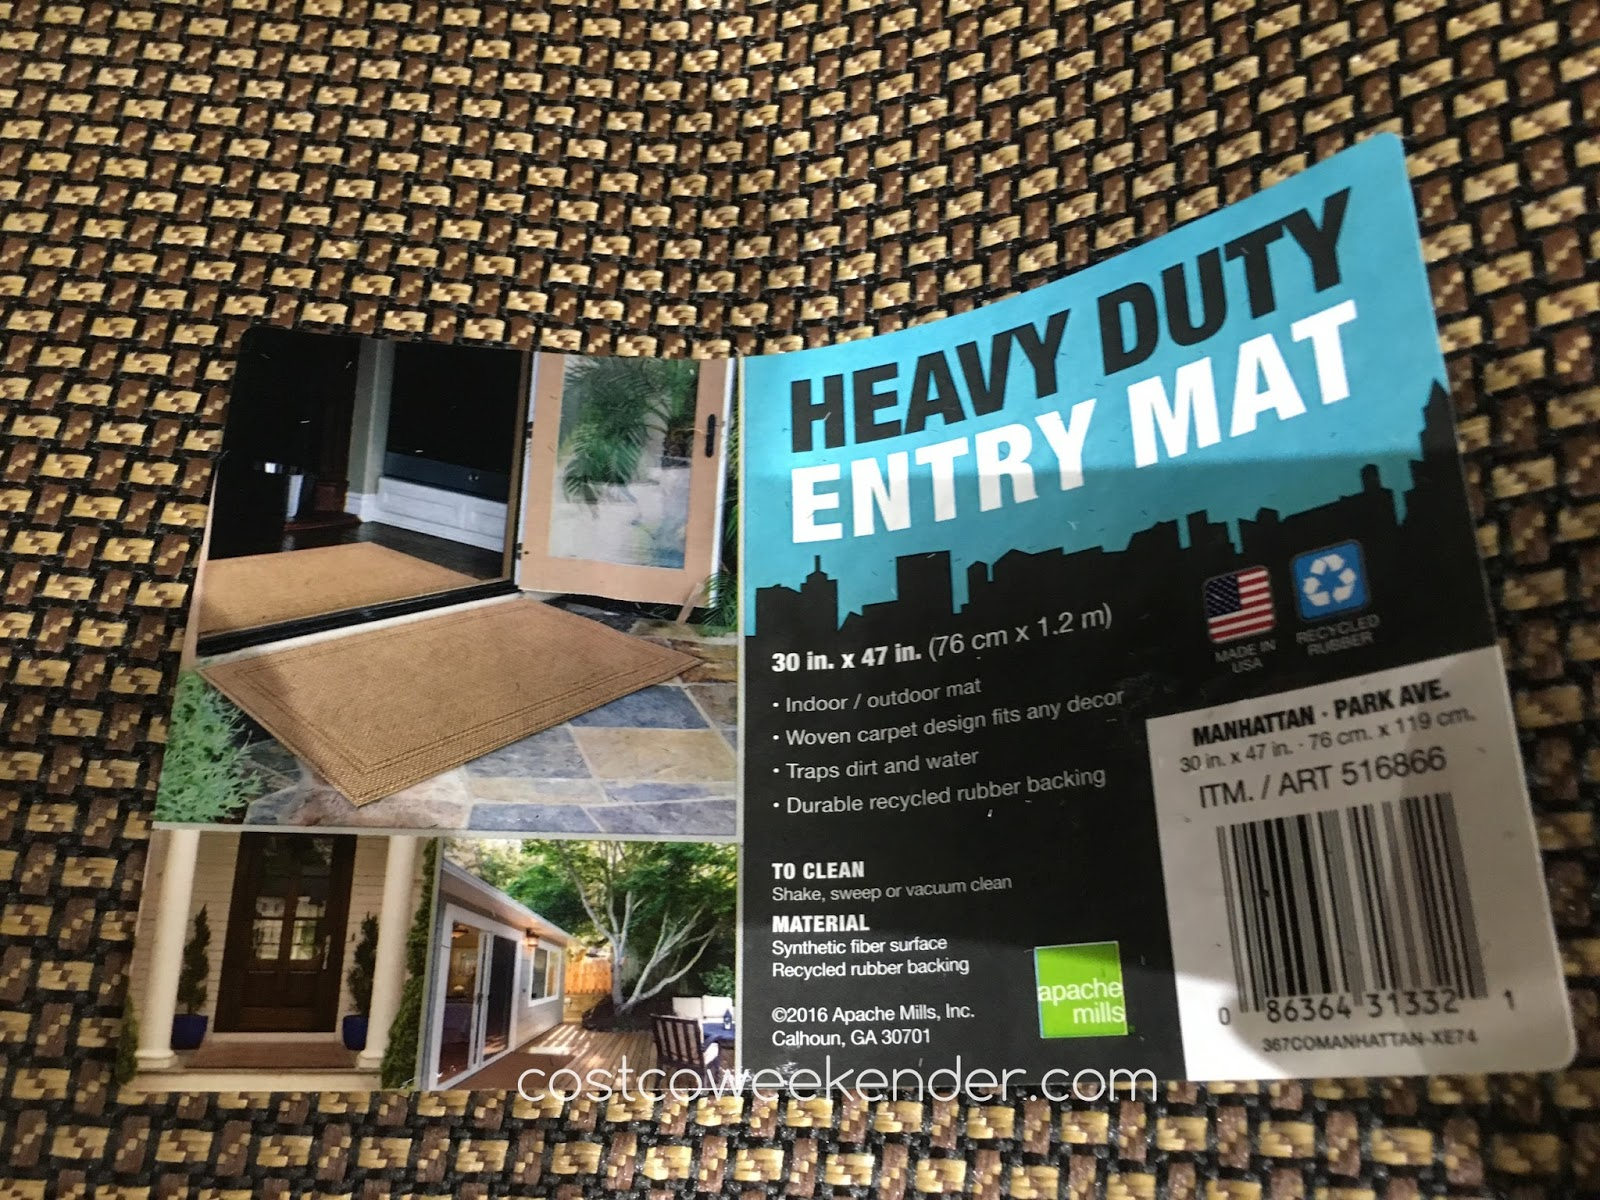 Rubber mats costco - Costco 516866 Apache Mills Manhattan Heavy Duty Entry Mat Great For Any Home Entrance